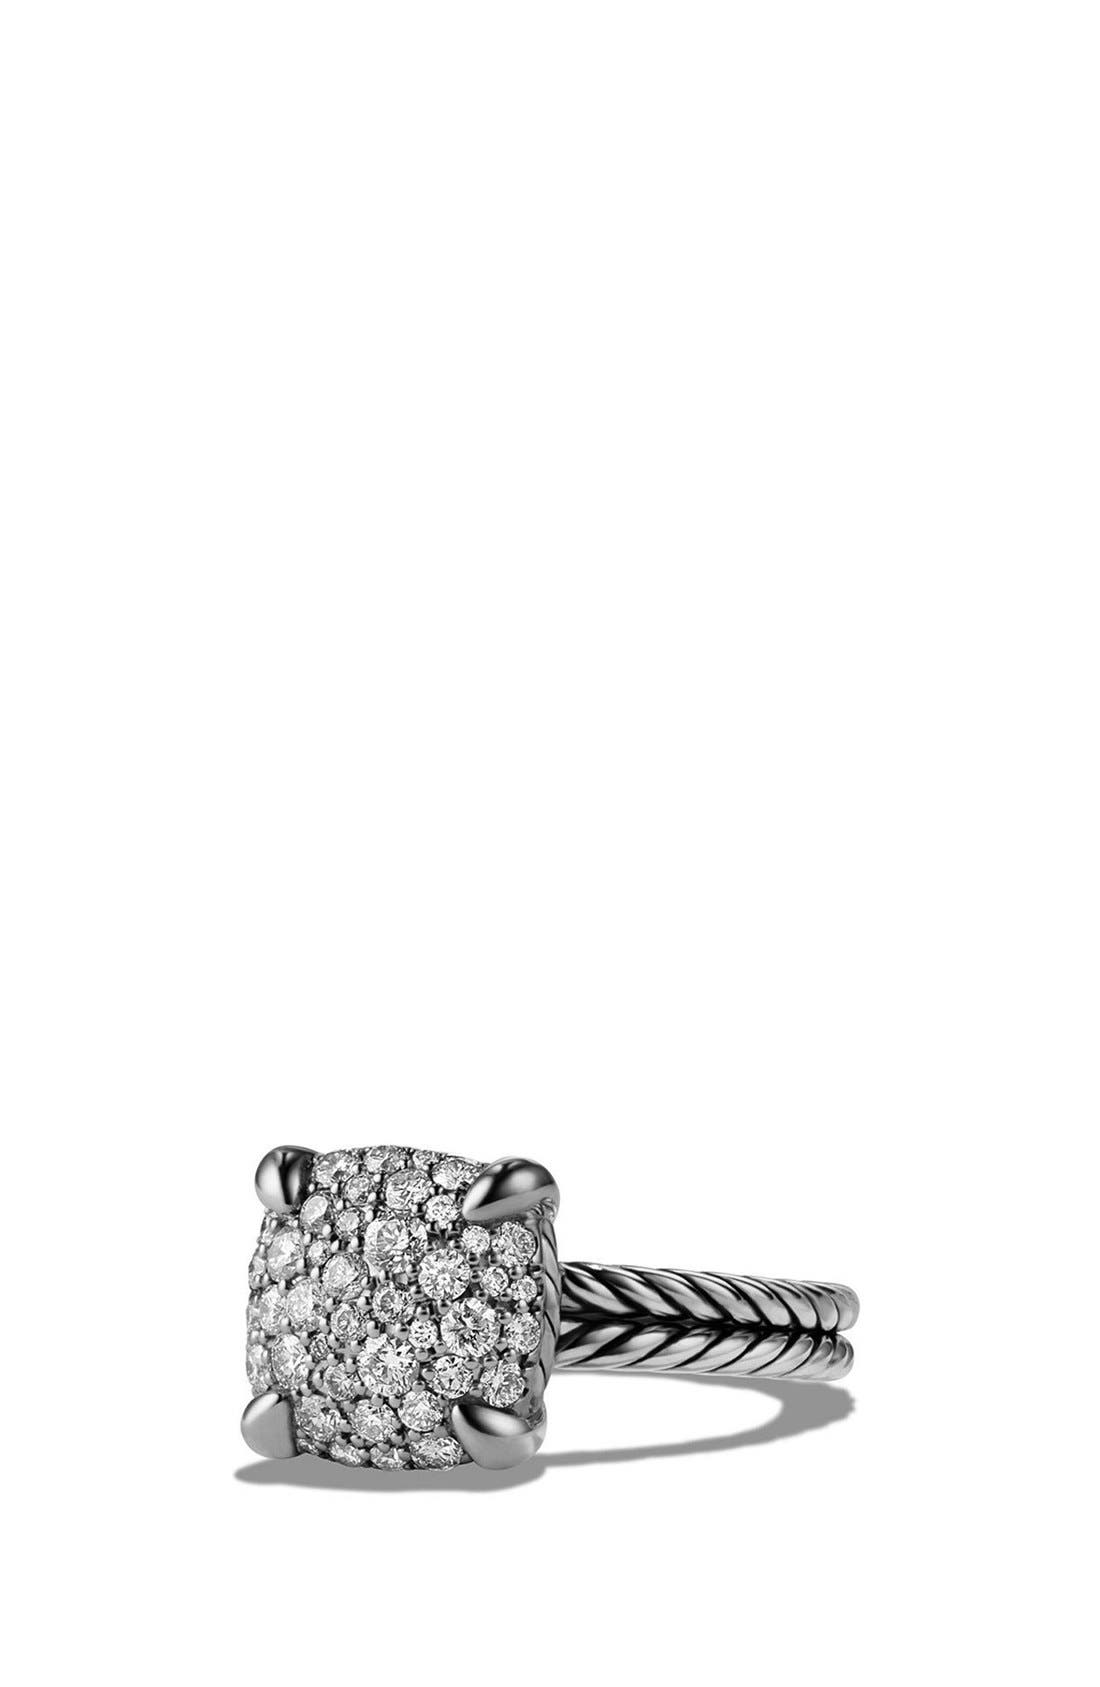 DAVID YURMAN Châtelaine Ring with Diamonds